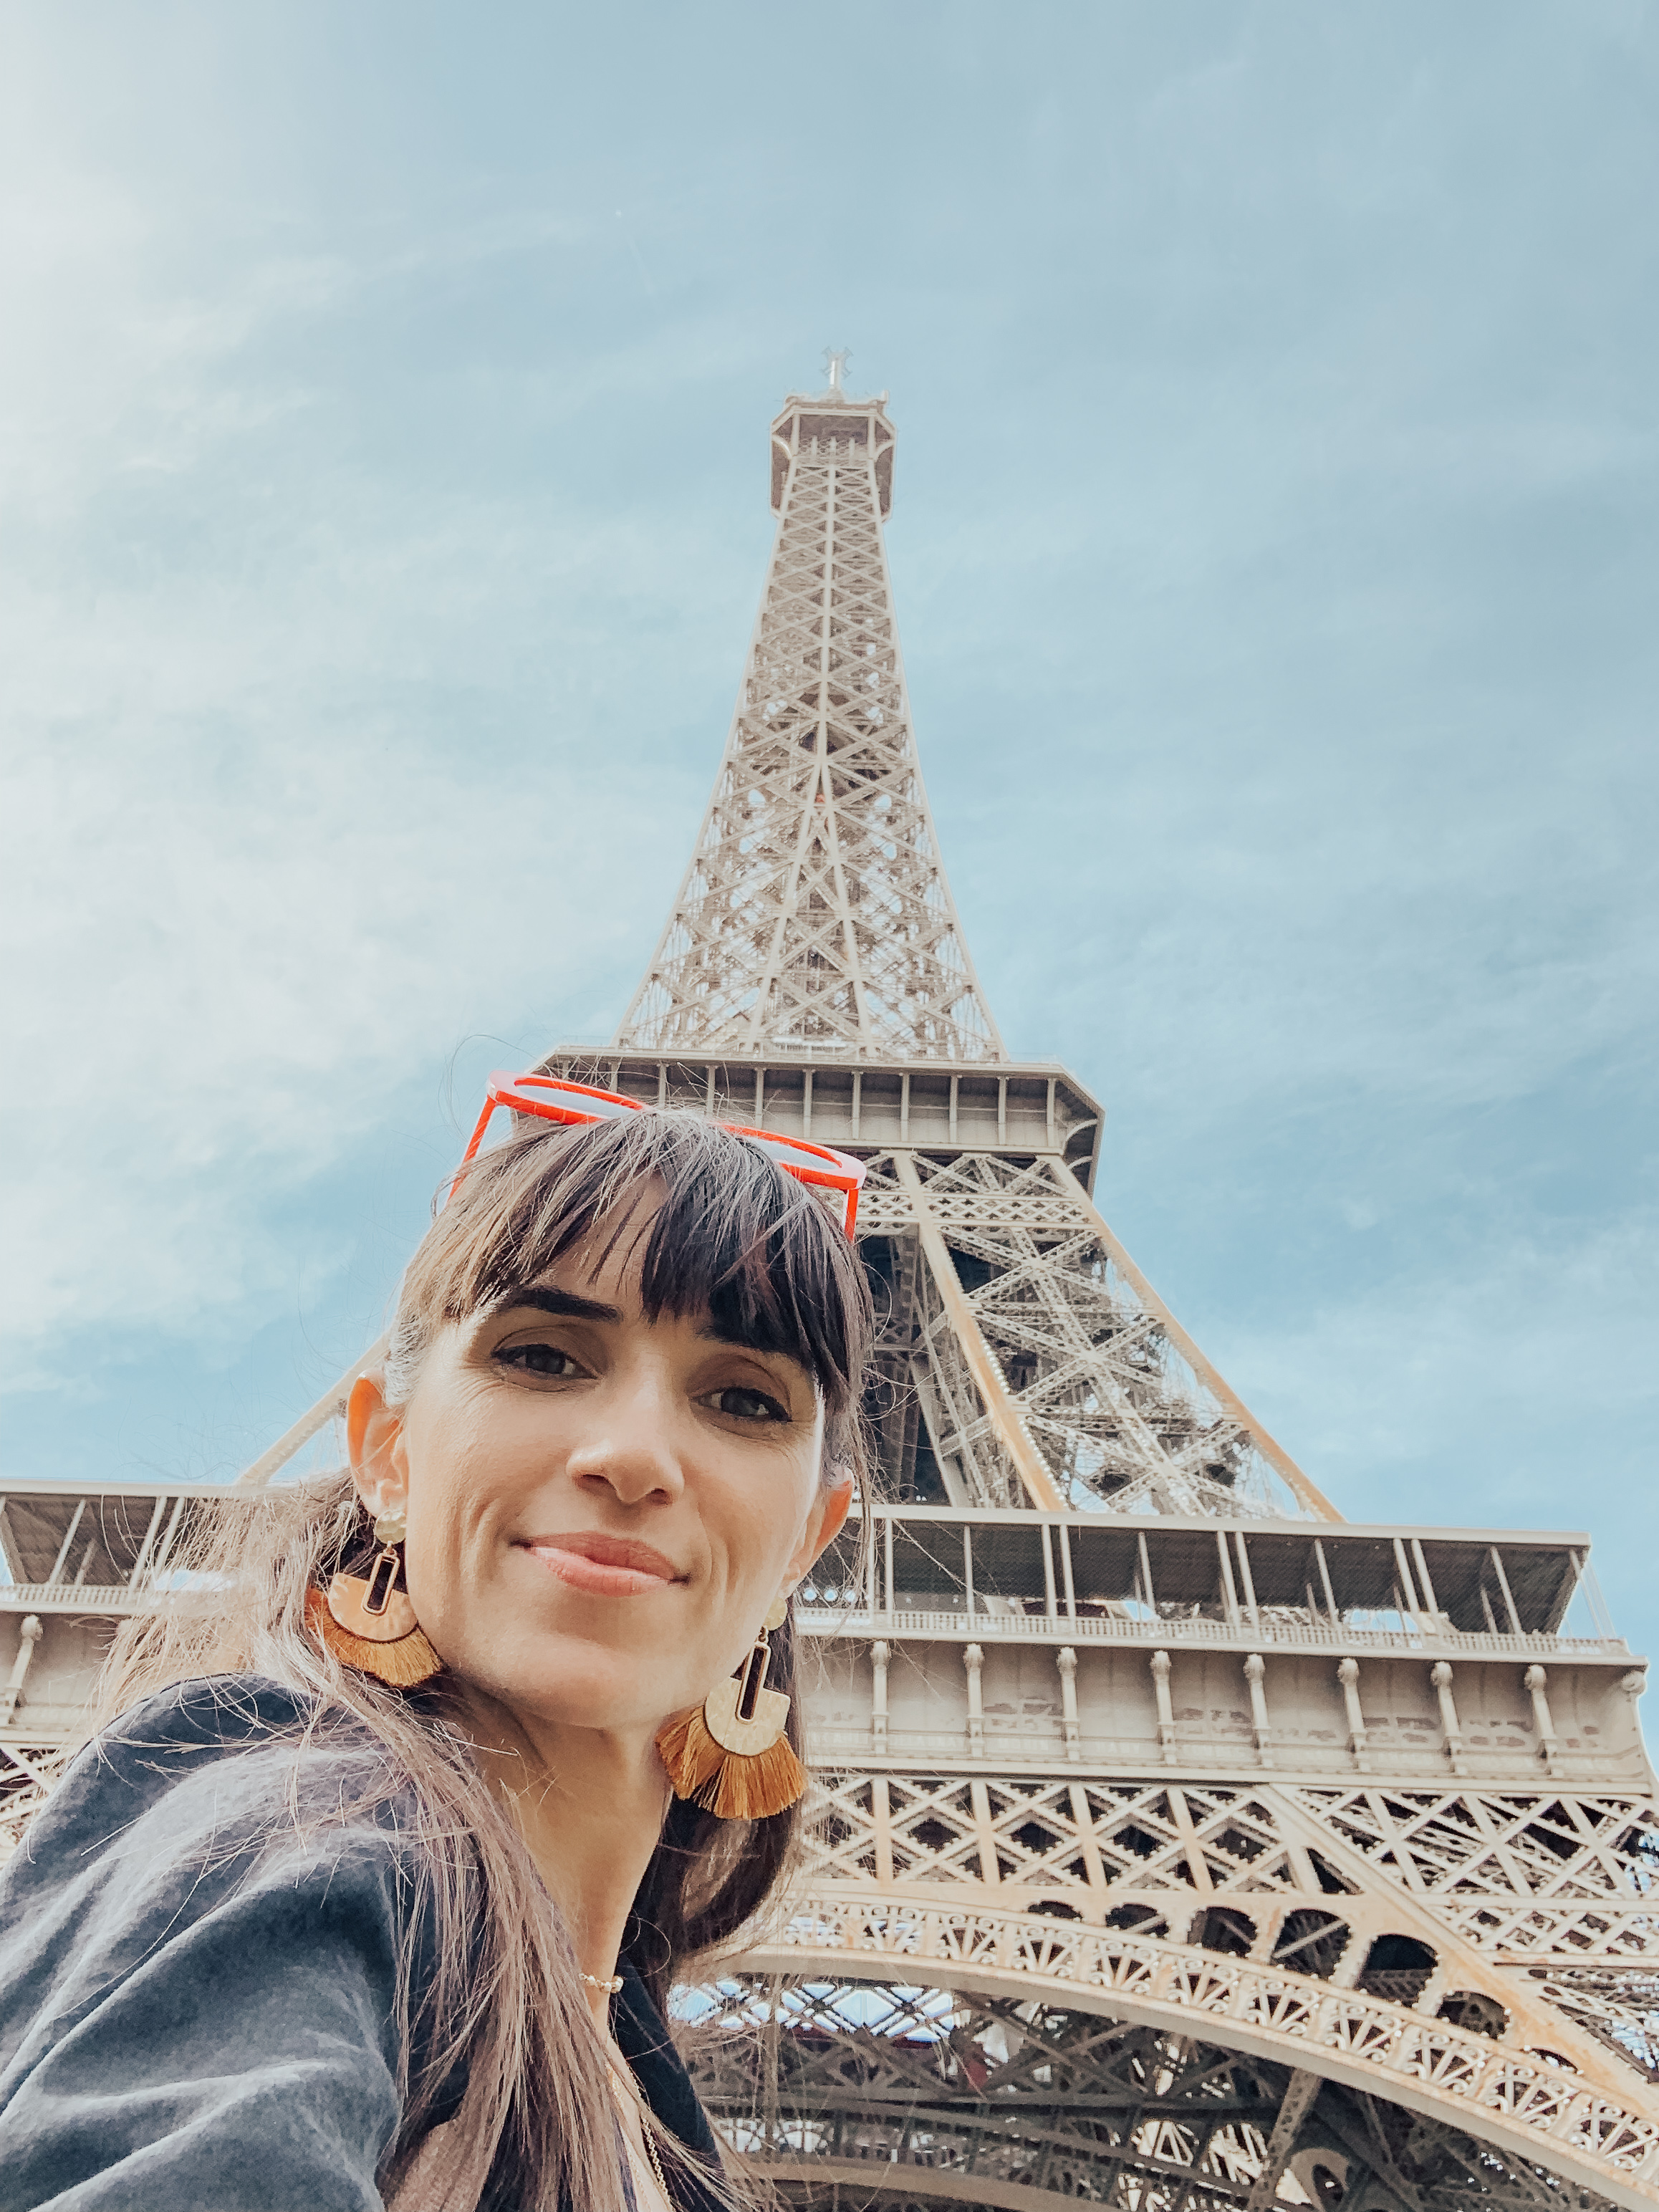 Underneath the Eiffel Tower in Paris – thecasualfree.com